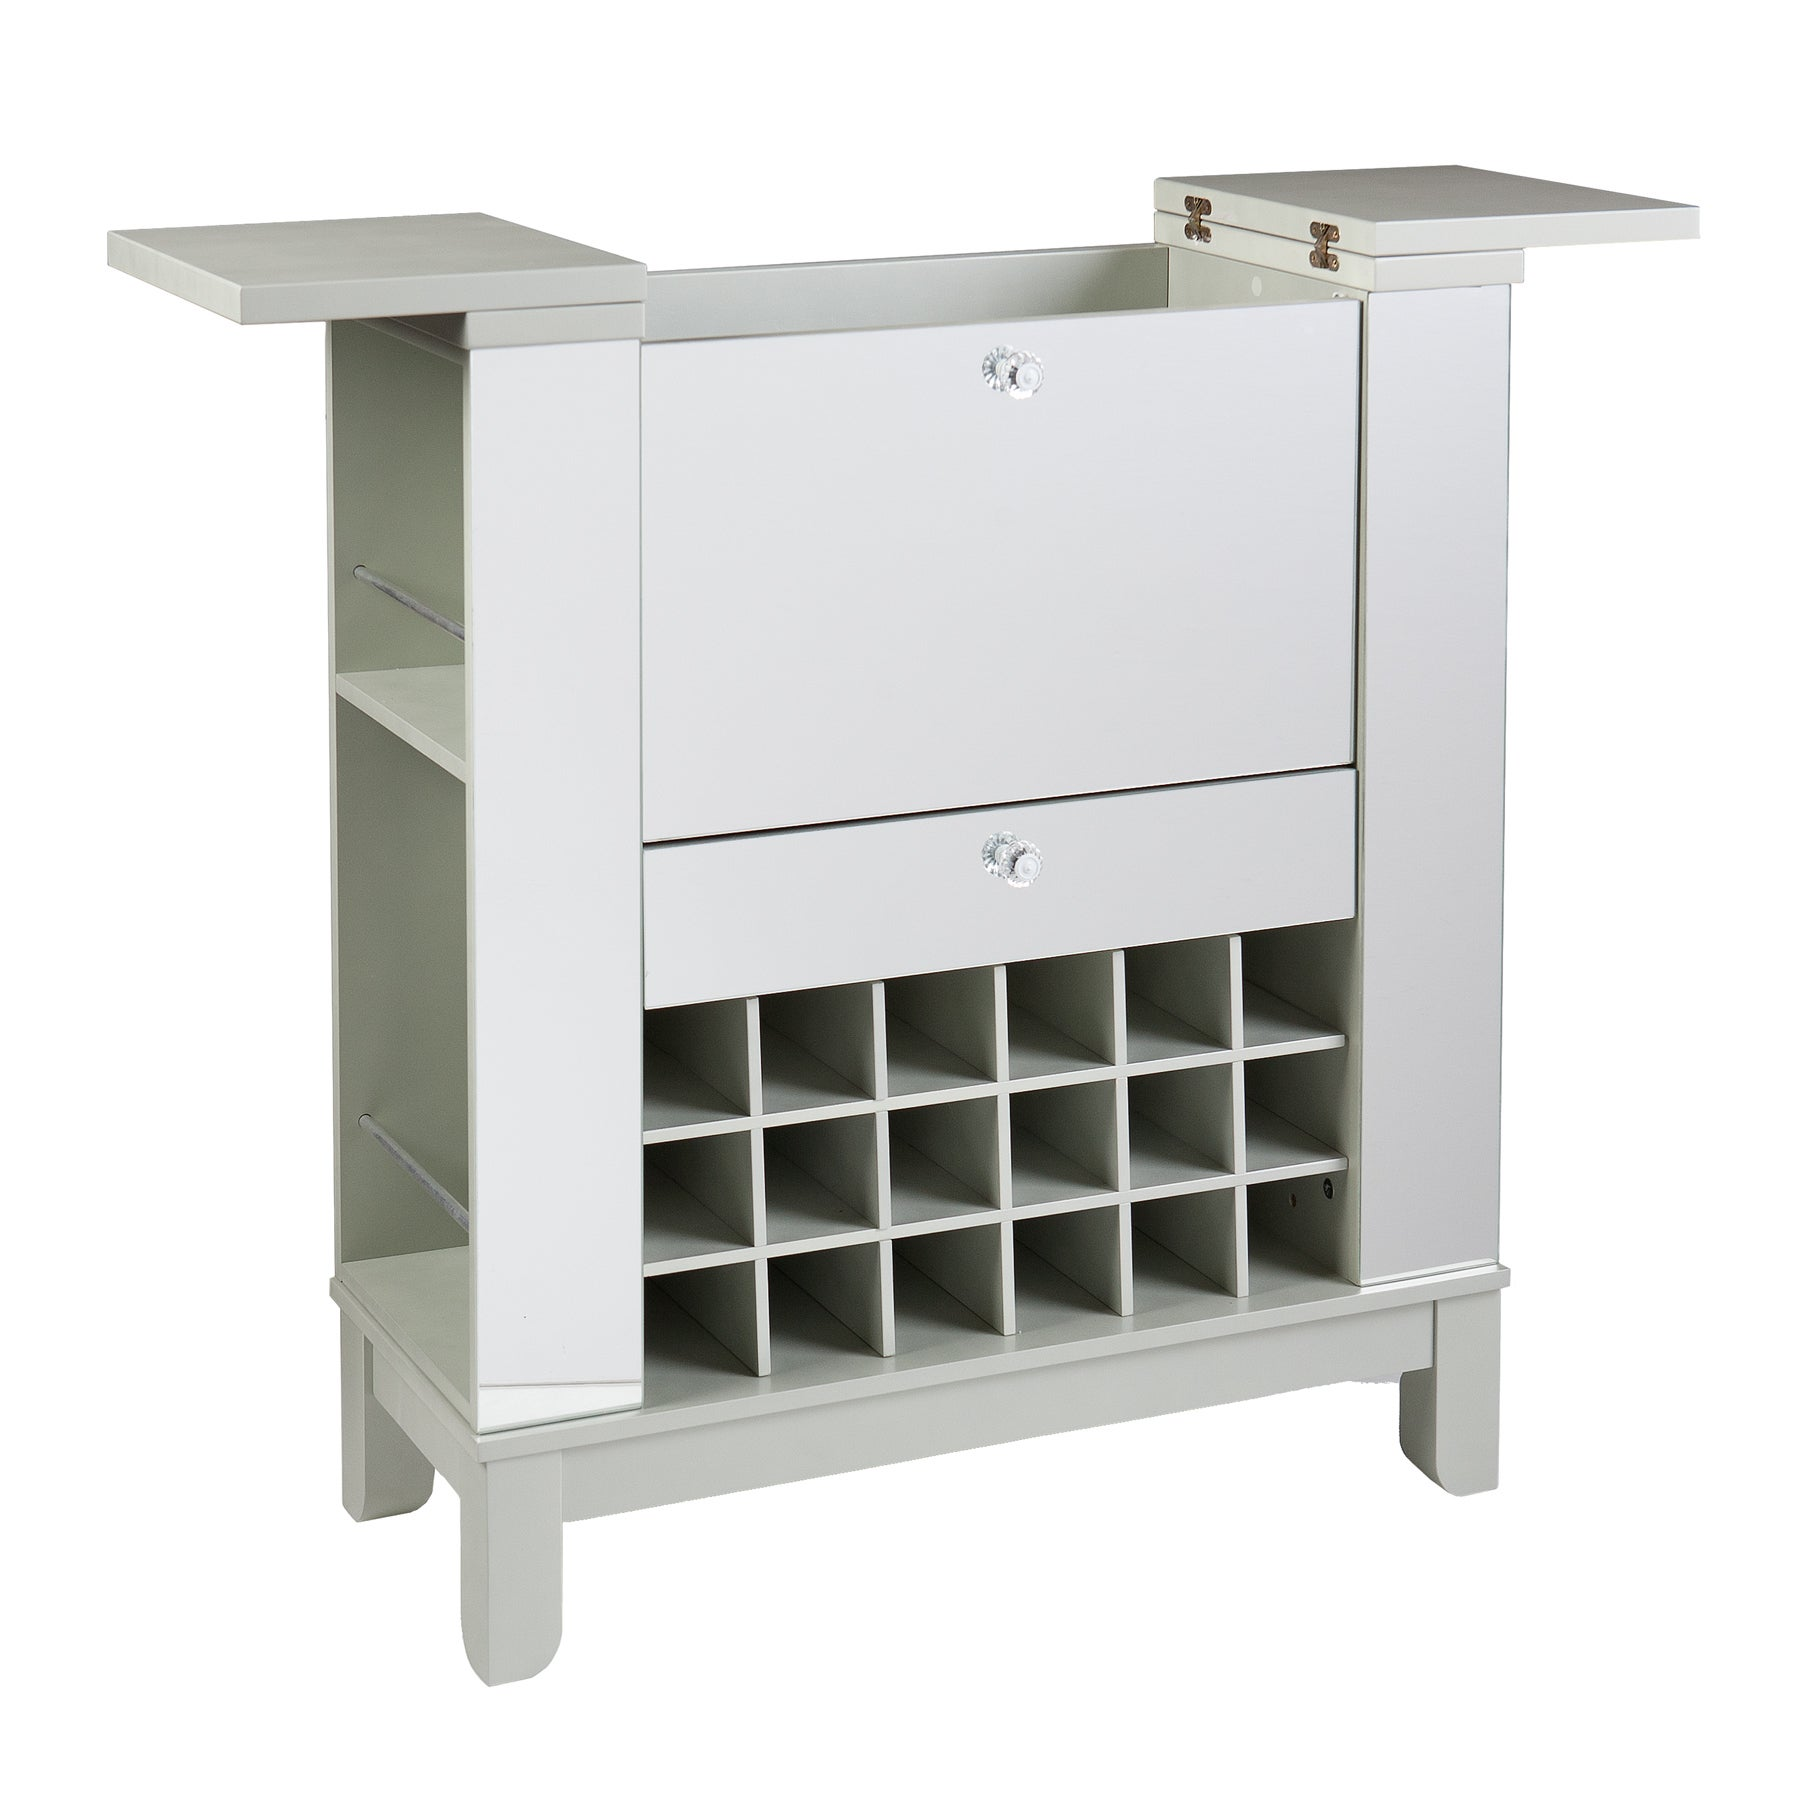 Harper Blvd Martindell Mirrored Fold Out Wine Bar Cabinet Free Shipping Today 17511310